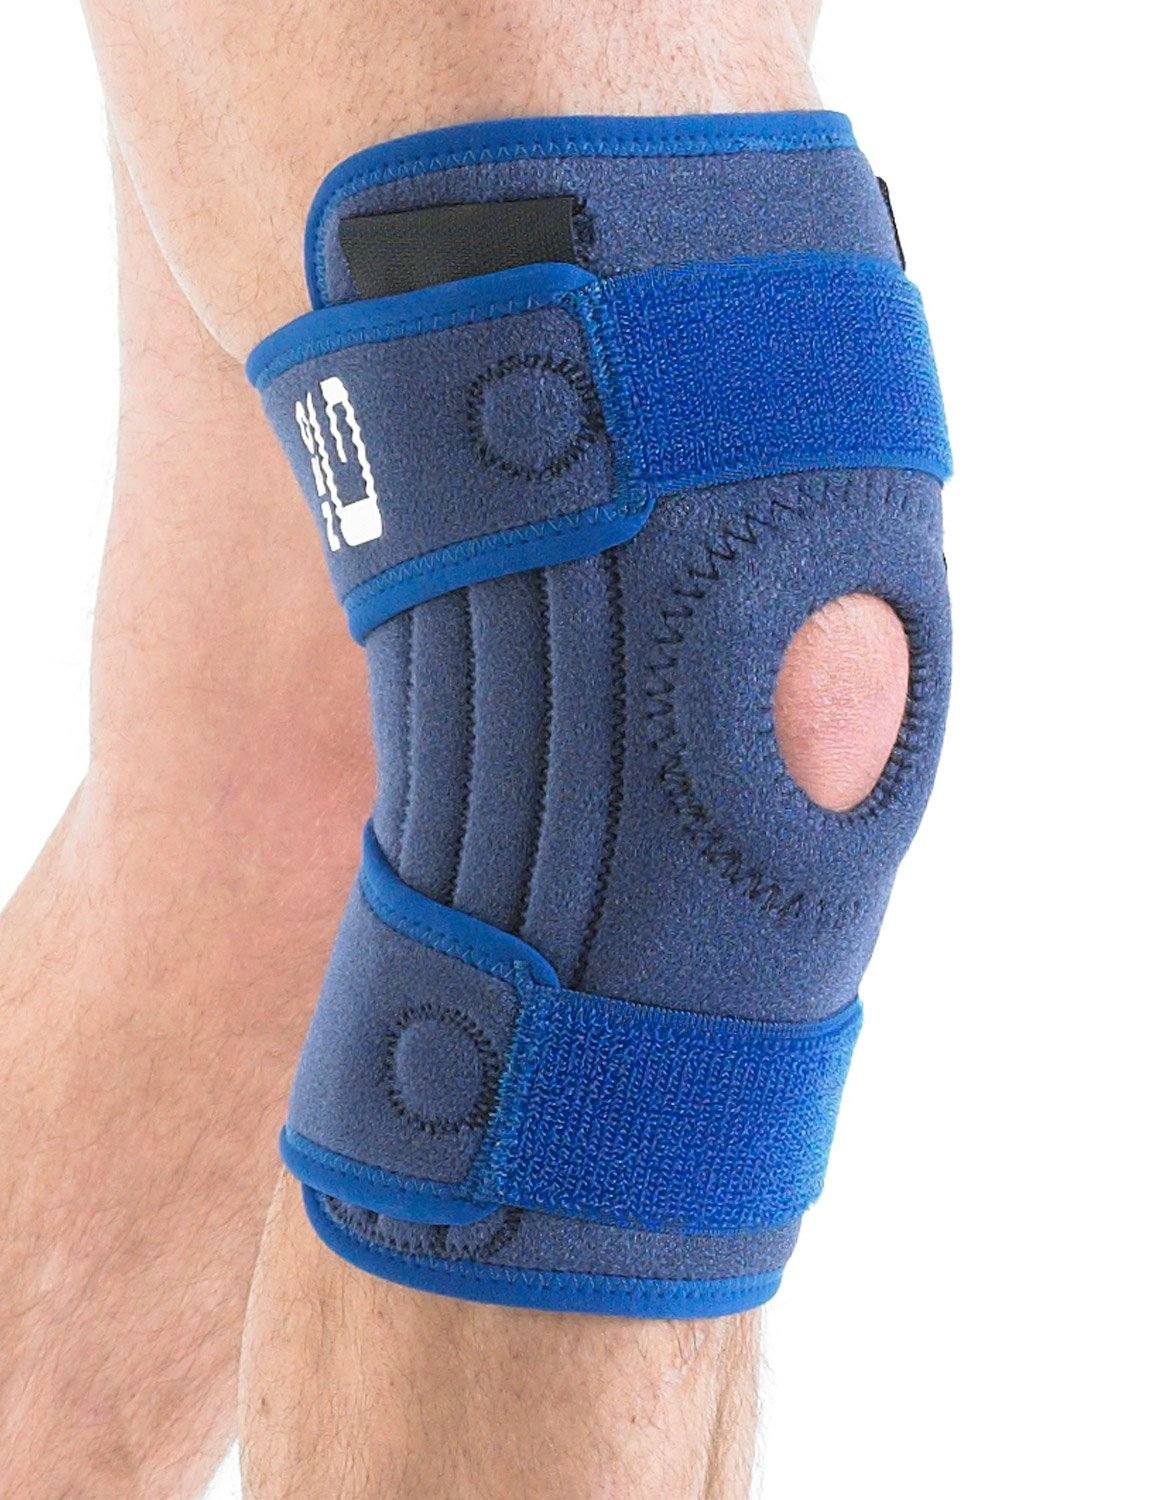 Neo-G Medical Grade Open Knee Support